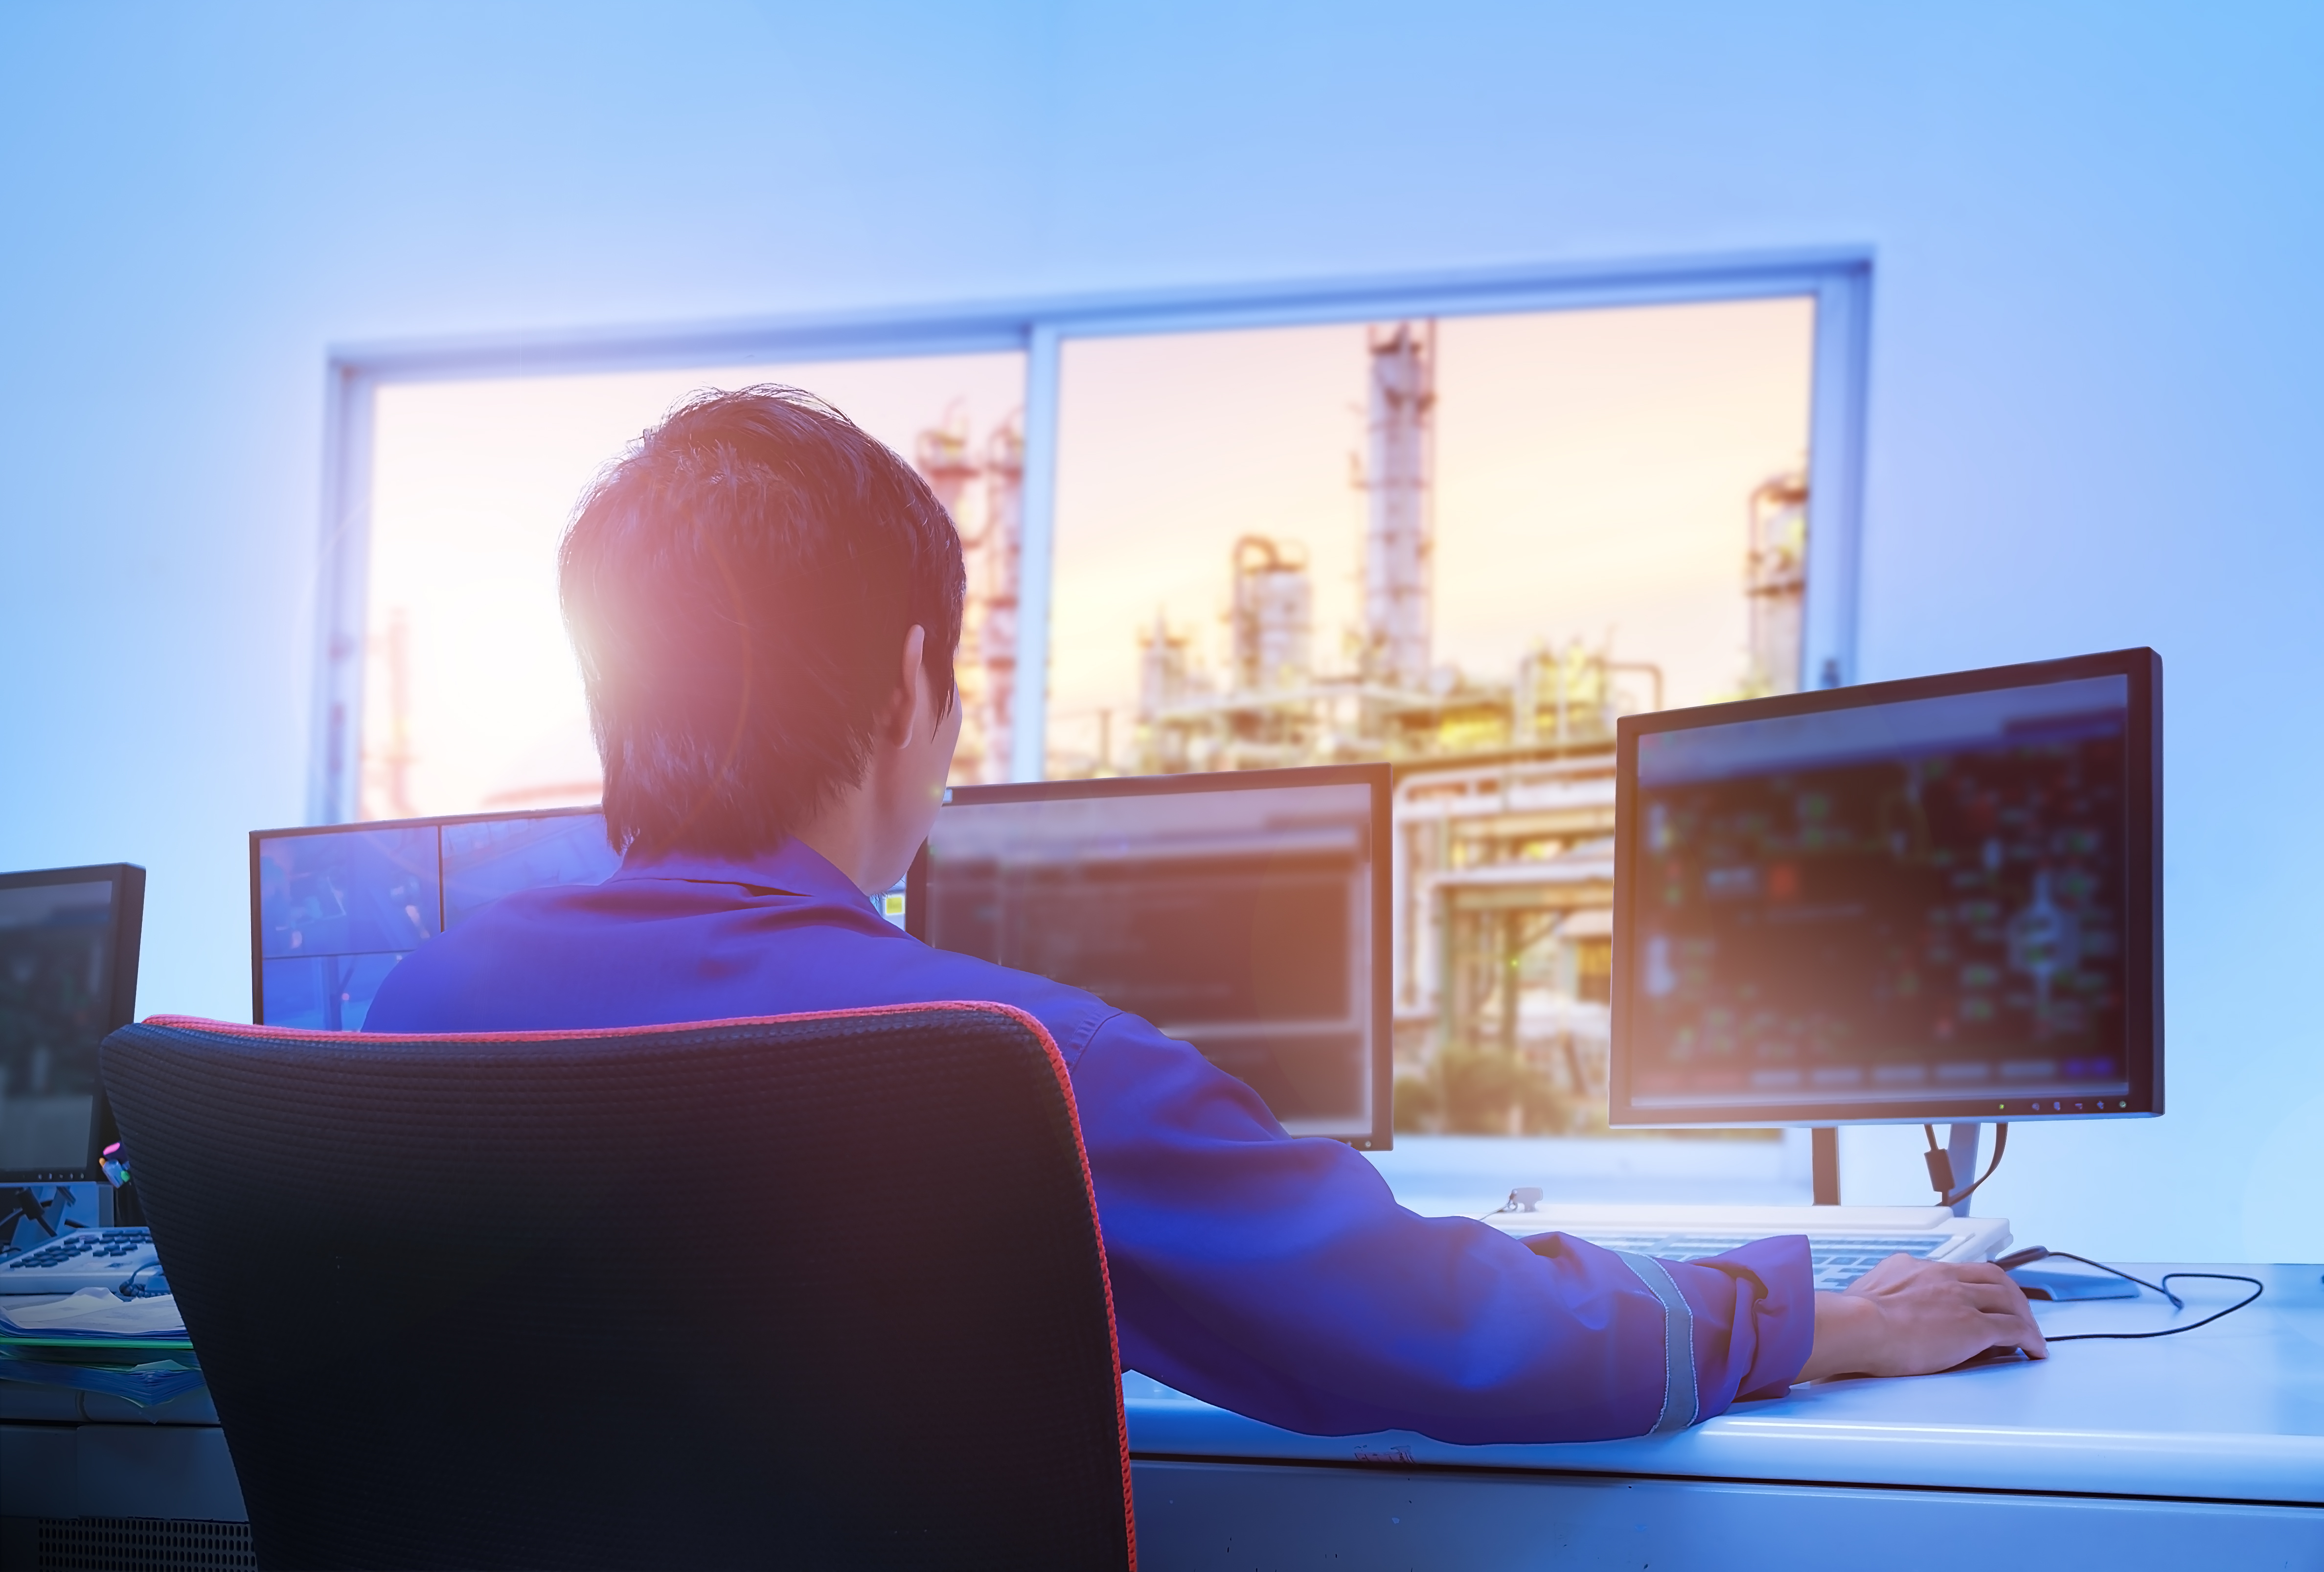 Information-driven SCADA systems can help improve decision